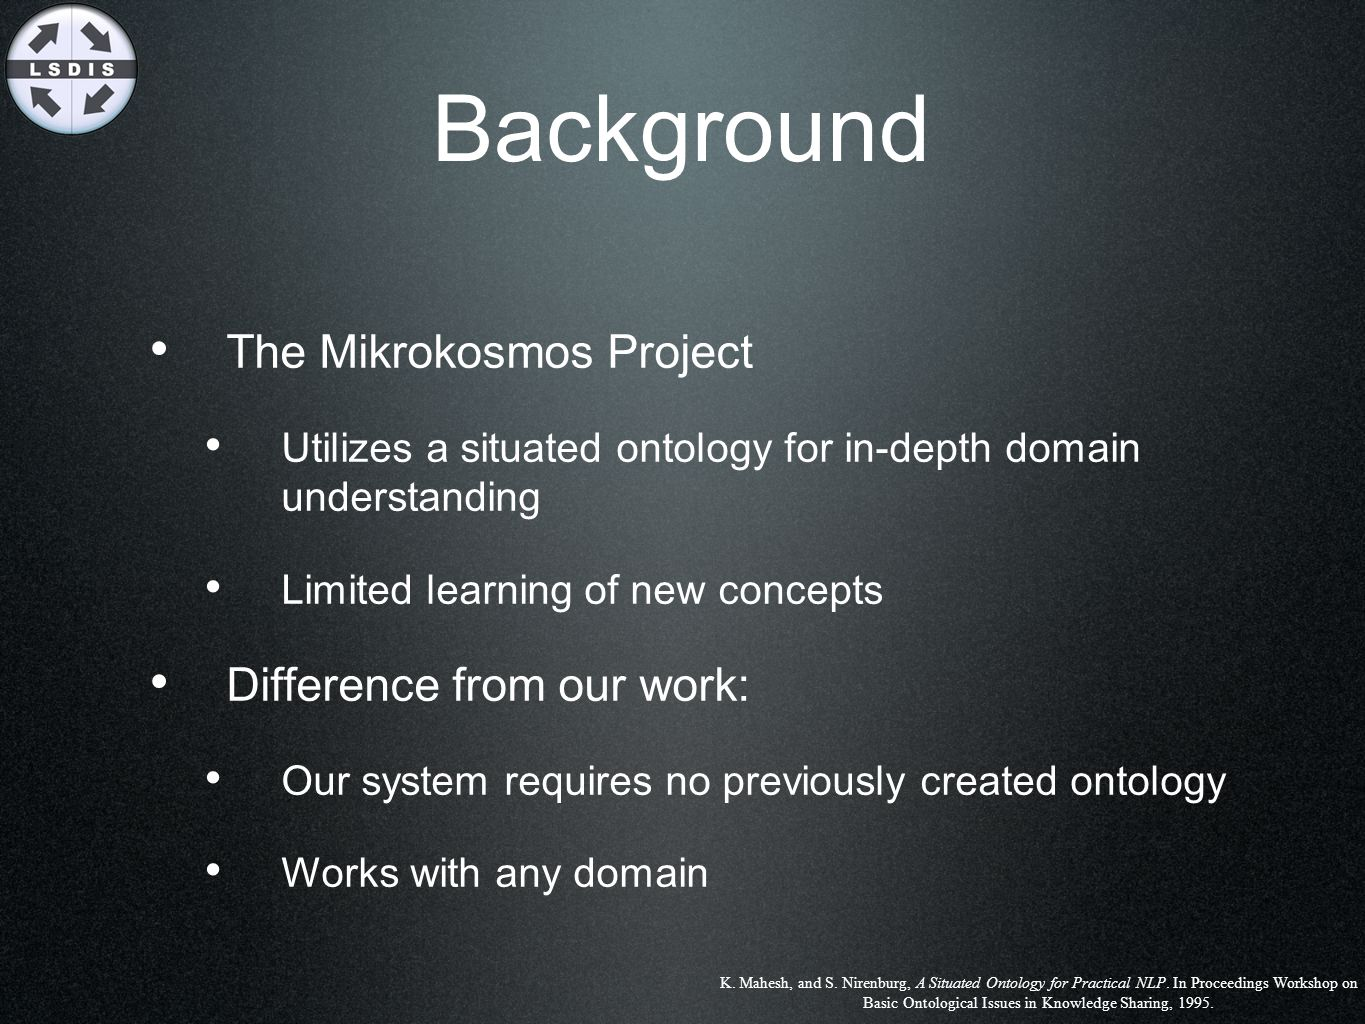 Background The Mikrokosmos Project Utilizes a situated ontology for in-depth domain understanding Limited learning of new concepts Difference from our